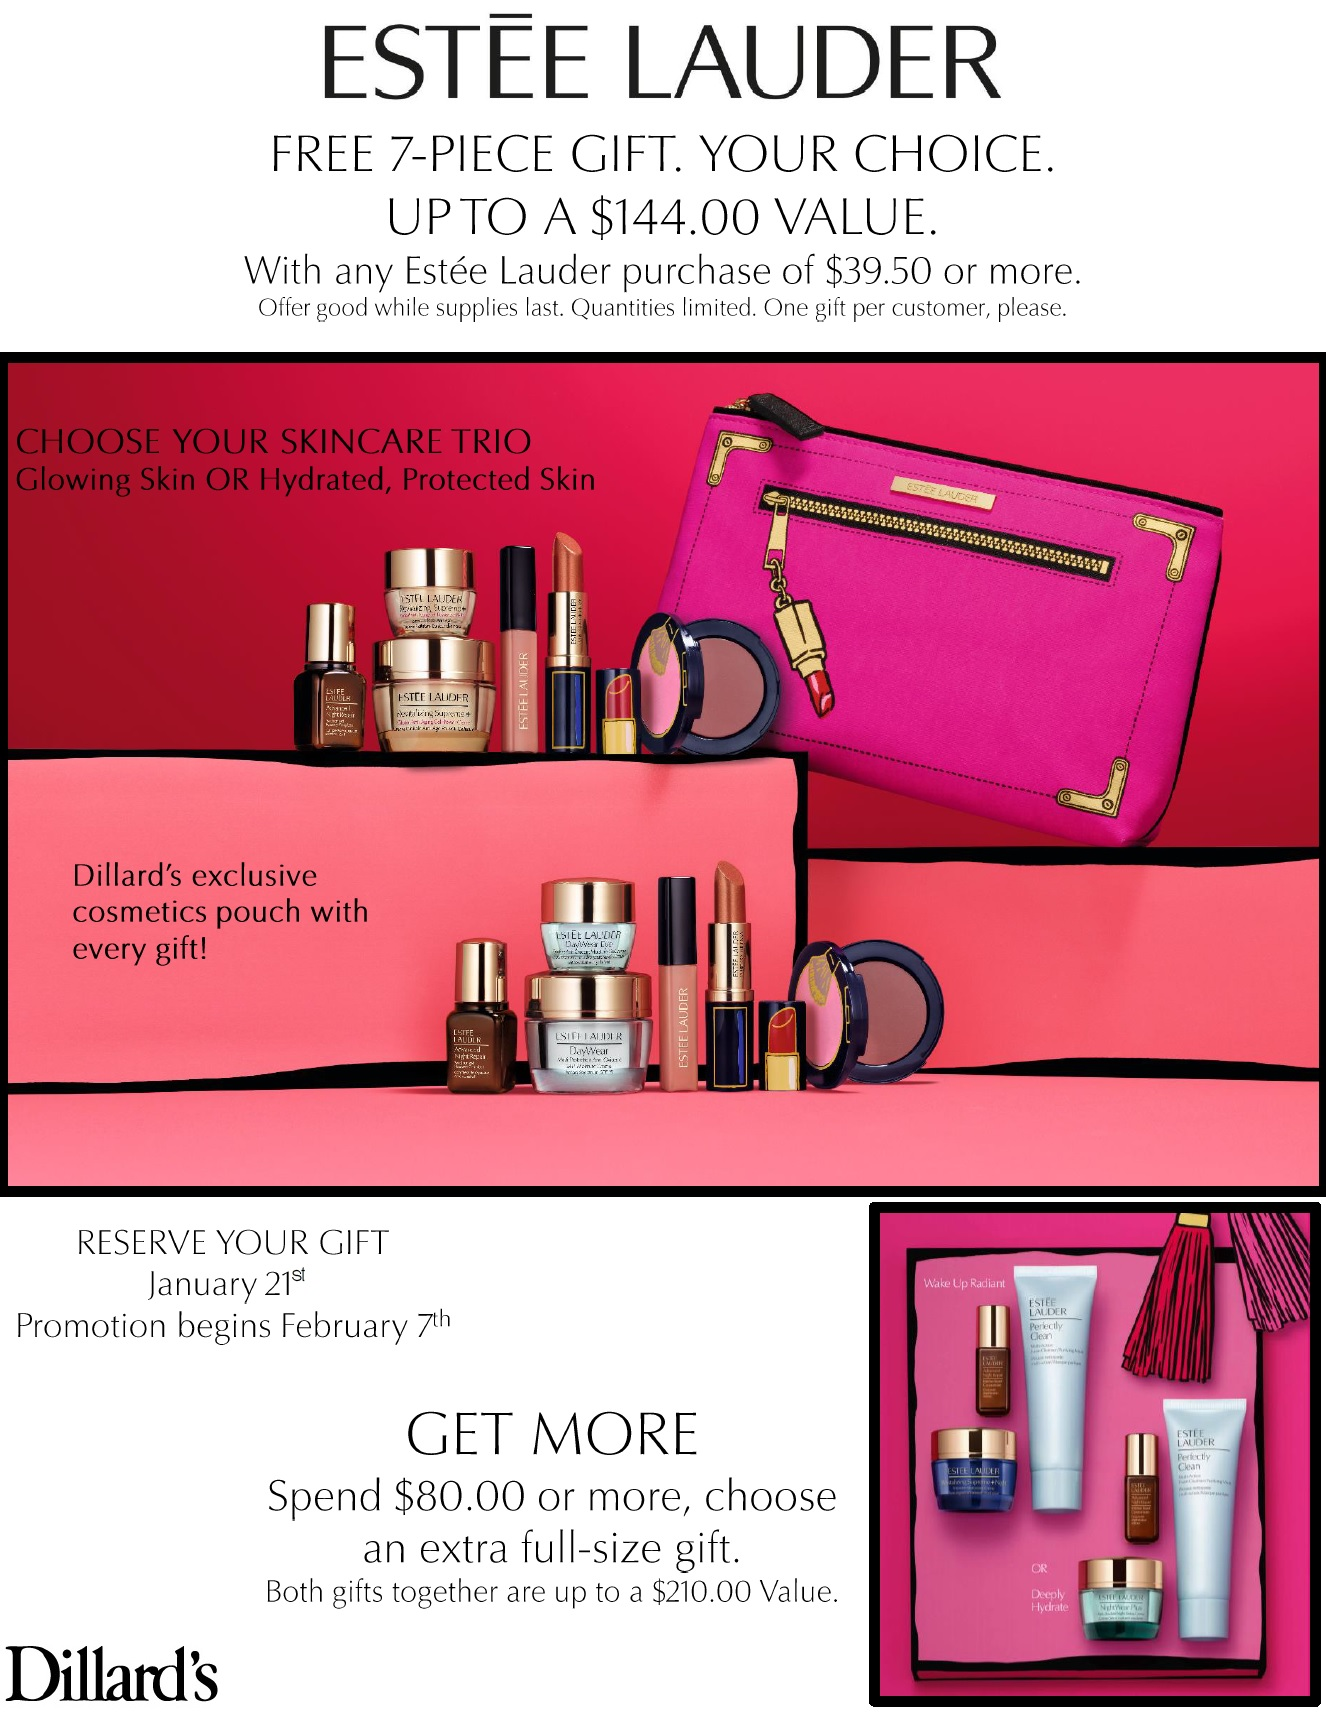 Free 7-Piece Gift